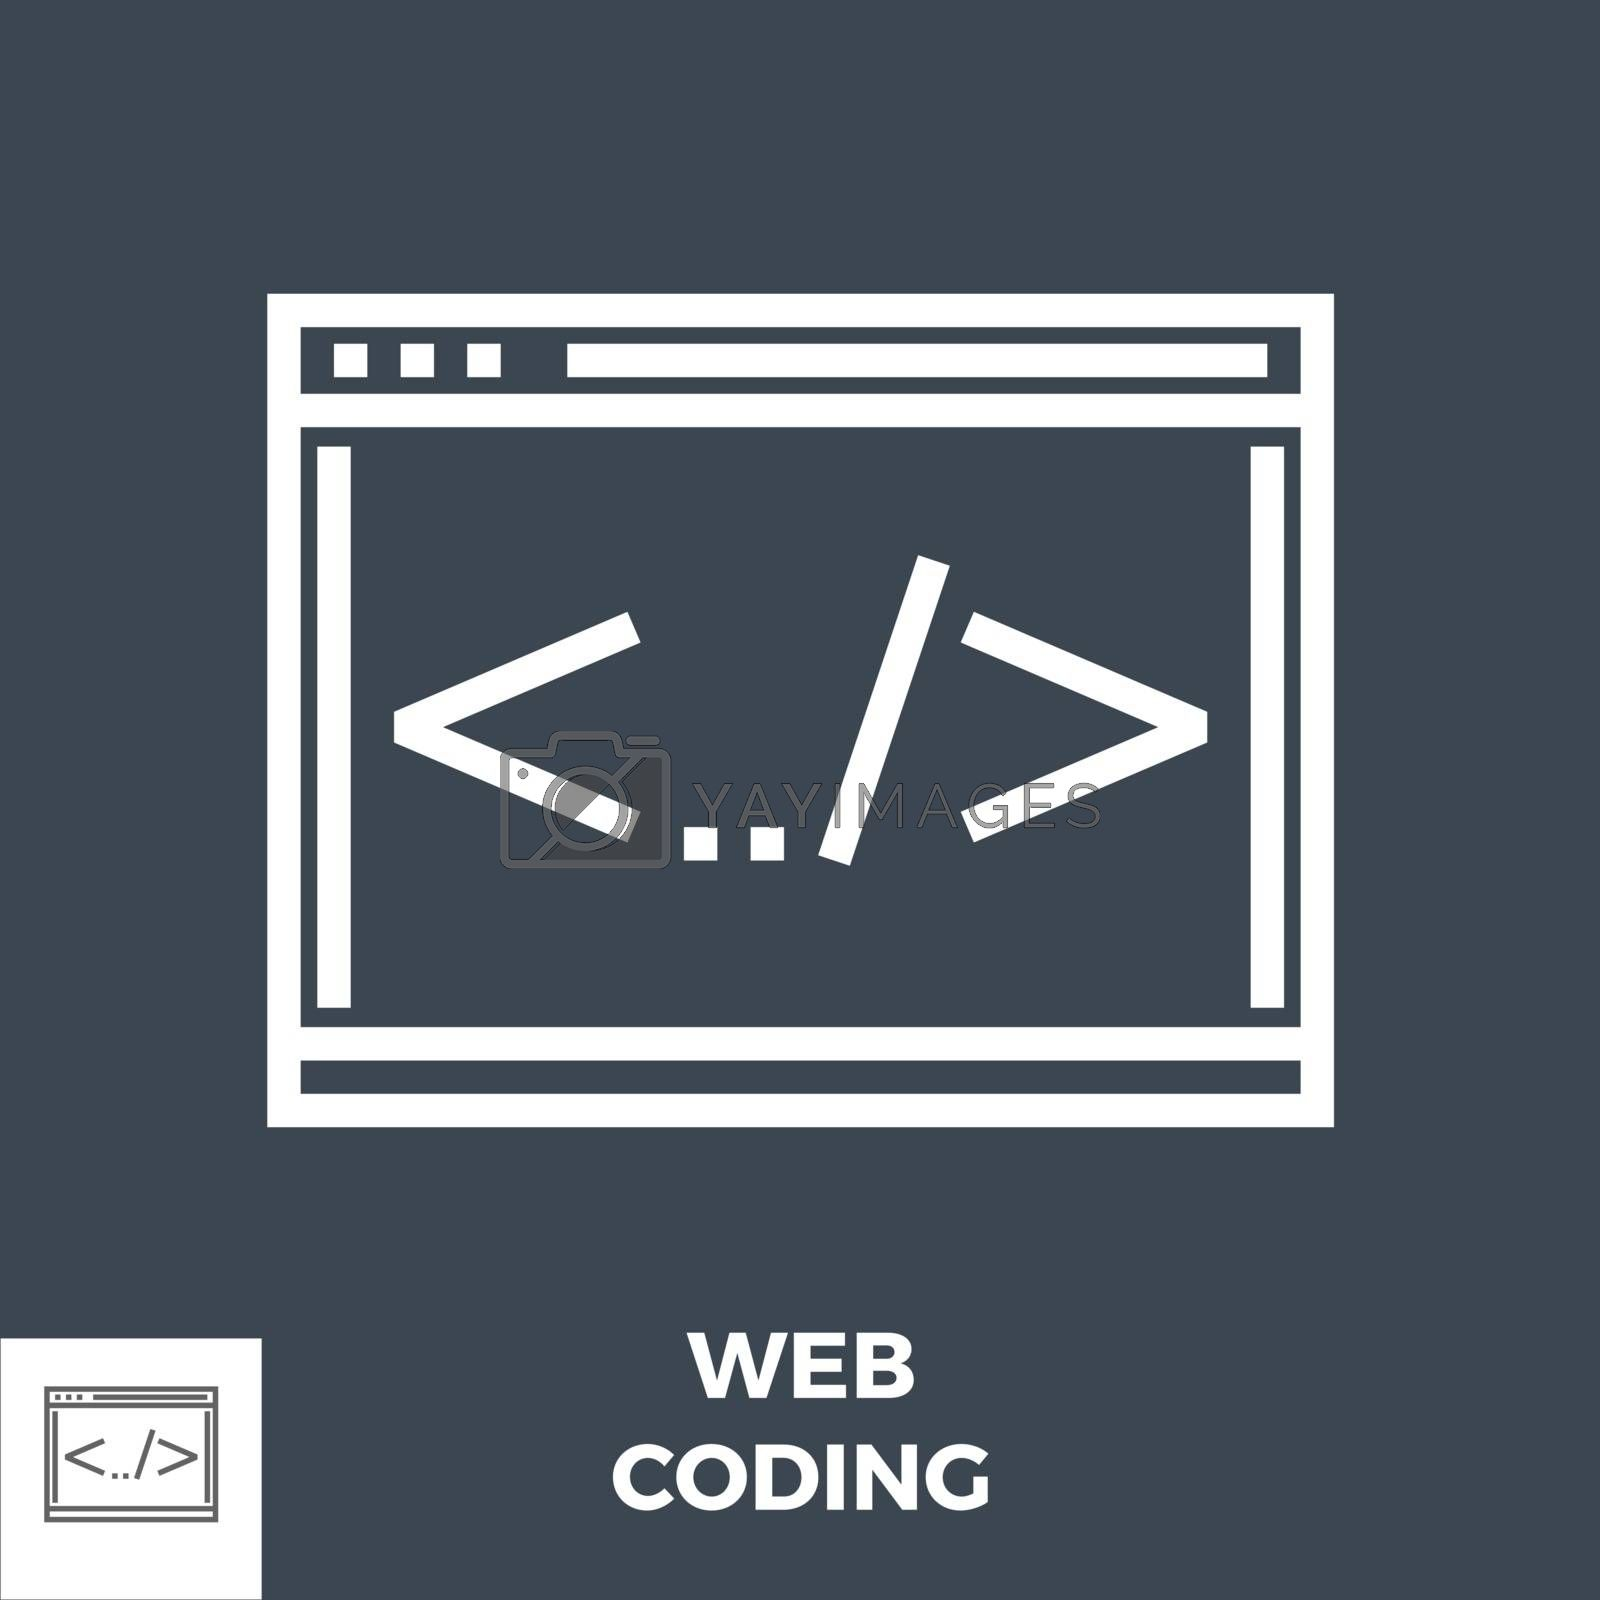 Web Coding Thin Line Vector Icon Isolated on the Black Background.